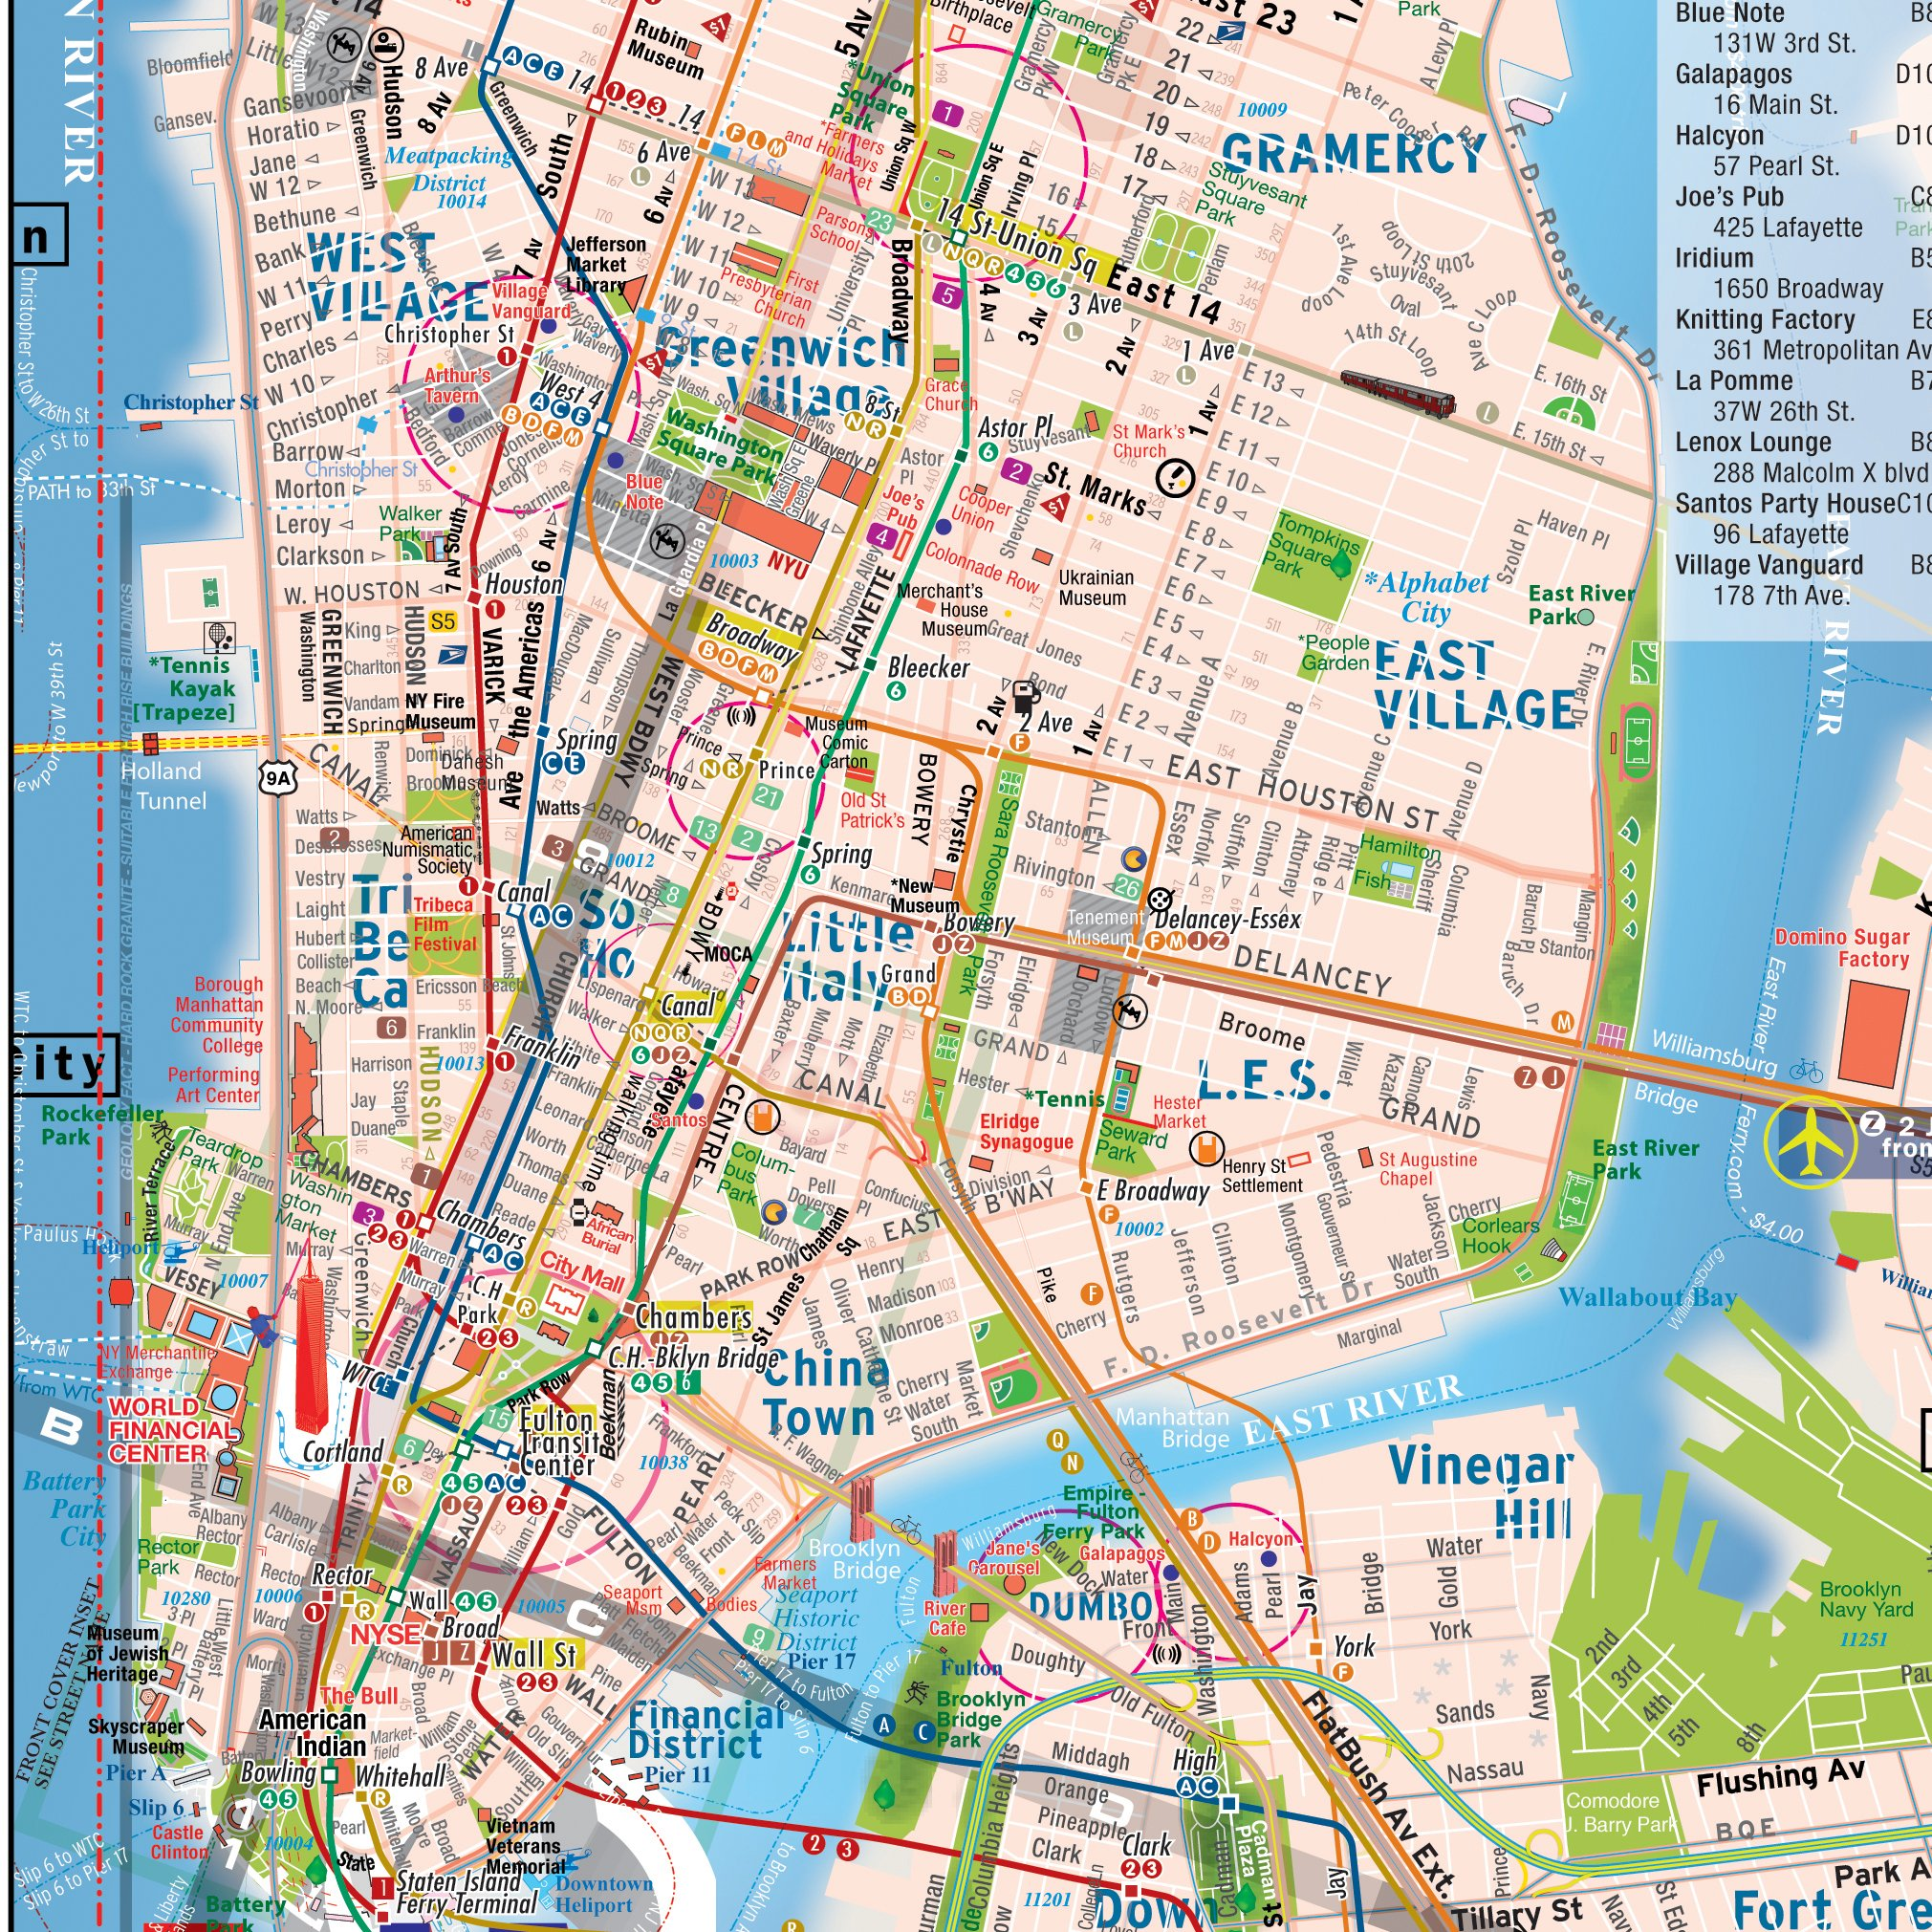 TerraMaps NYC Manhattan Street and Subway map - Waterproof ... on manhattan bus map new york, manhattan ny map, manhattan map printable, manhattan map penn station, manhattan neighborhood map, manhattan map hotels, manhattan points of interest map, manhattan subway map, map of manhattan new york city attractions, florida state with attractions, map of midtown manhattan attractions, manhattan tourist map, manhattan map grand central station, manhattan sightseeing, manhattan tour map, manhattan street map, manhattan map nyc, new york top 10 attractions, lower manhattan map and attractions, manhattan road map,